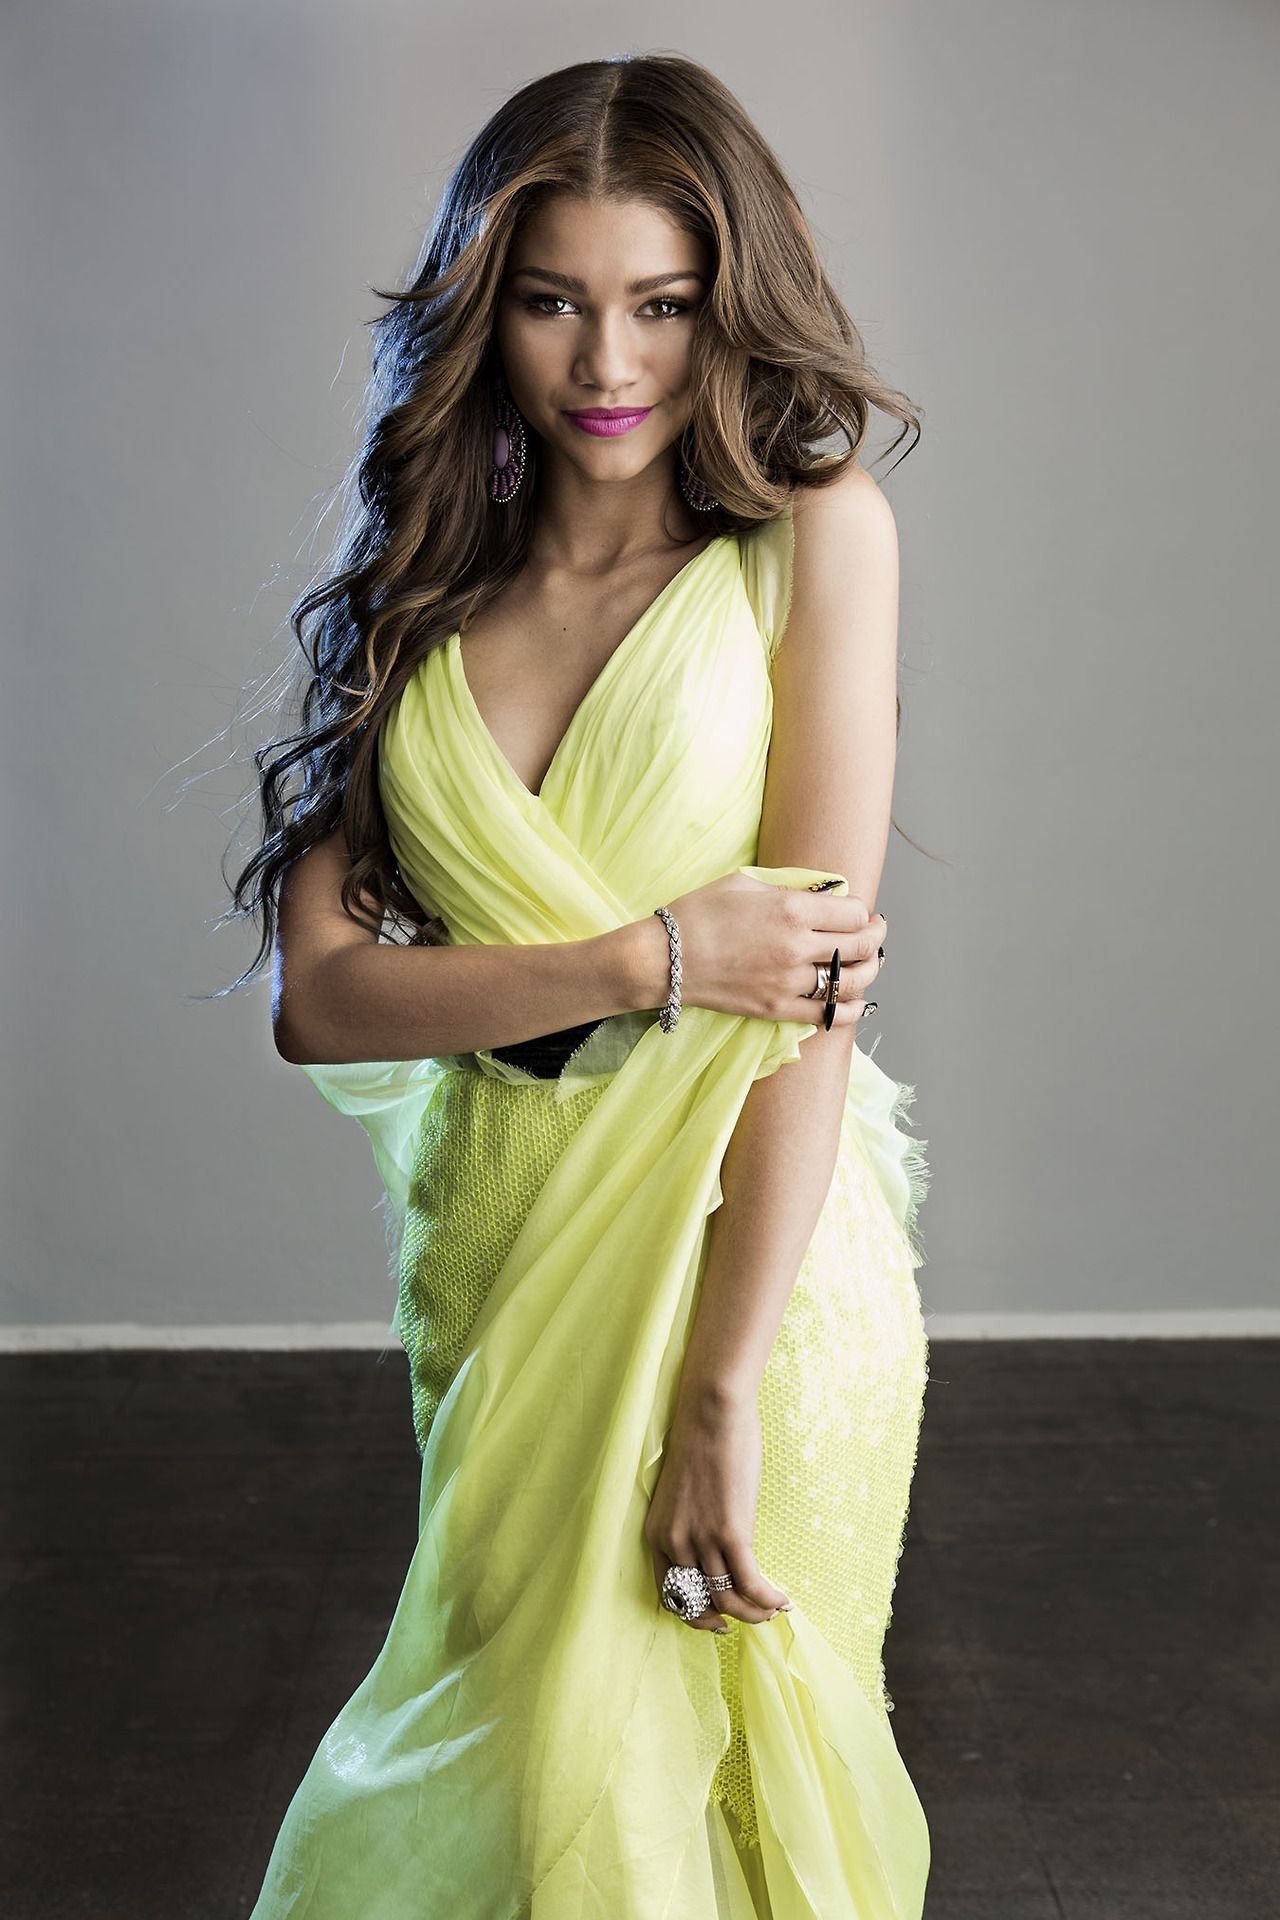 Zendaya - Photoshoot for Faze Magazine (by Margaret ...